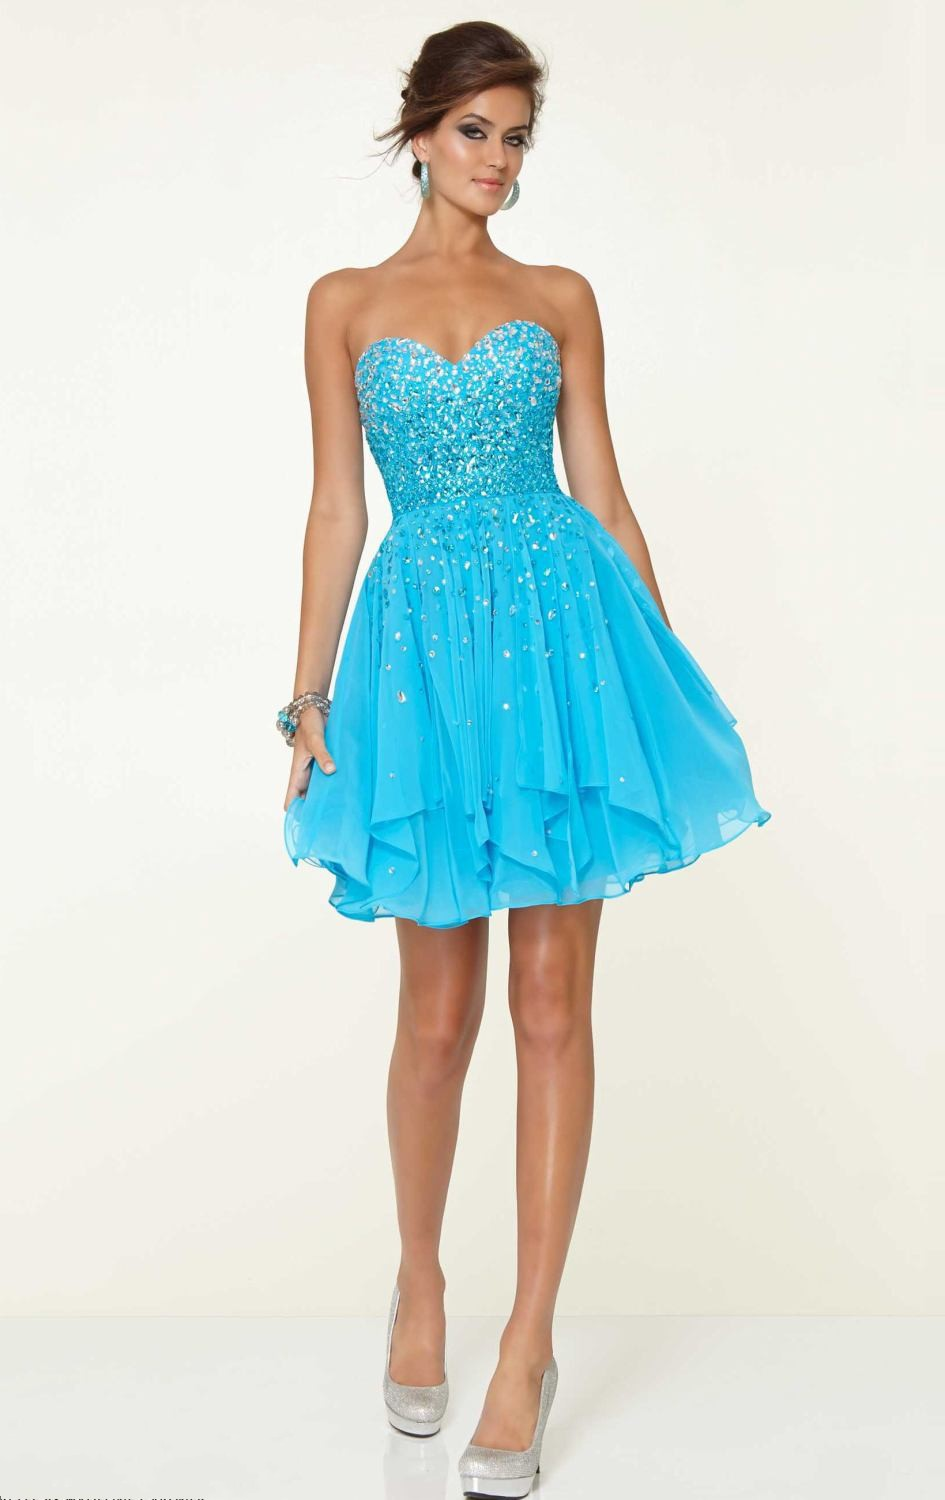 Where To Buy 8th Grade Graduation Dresses 41